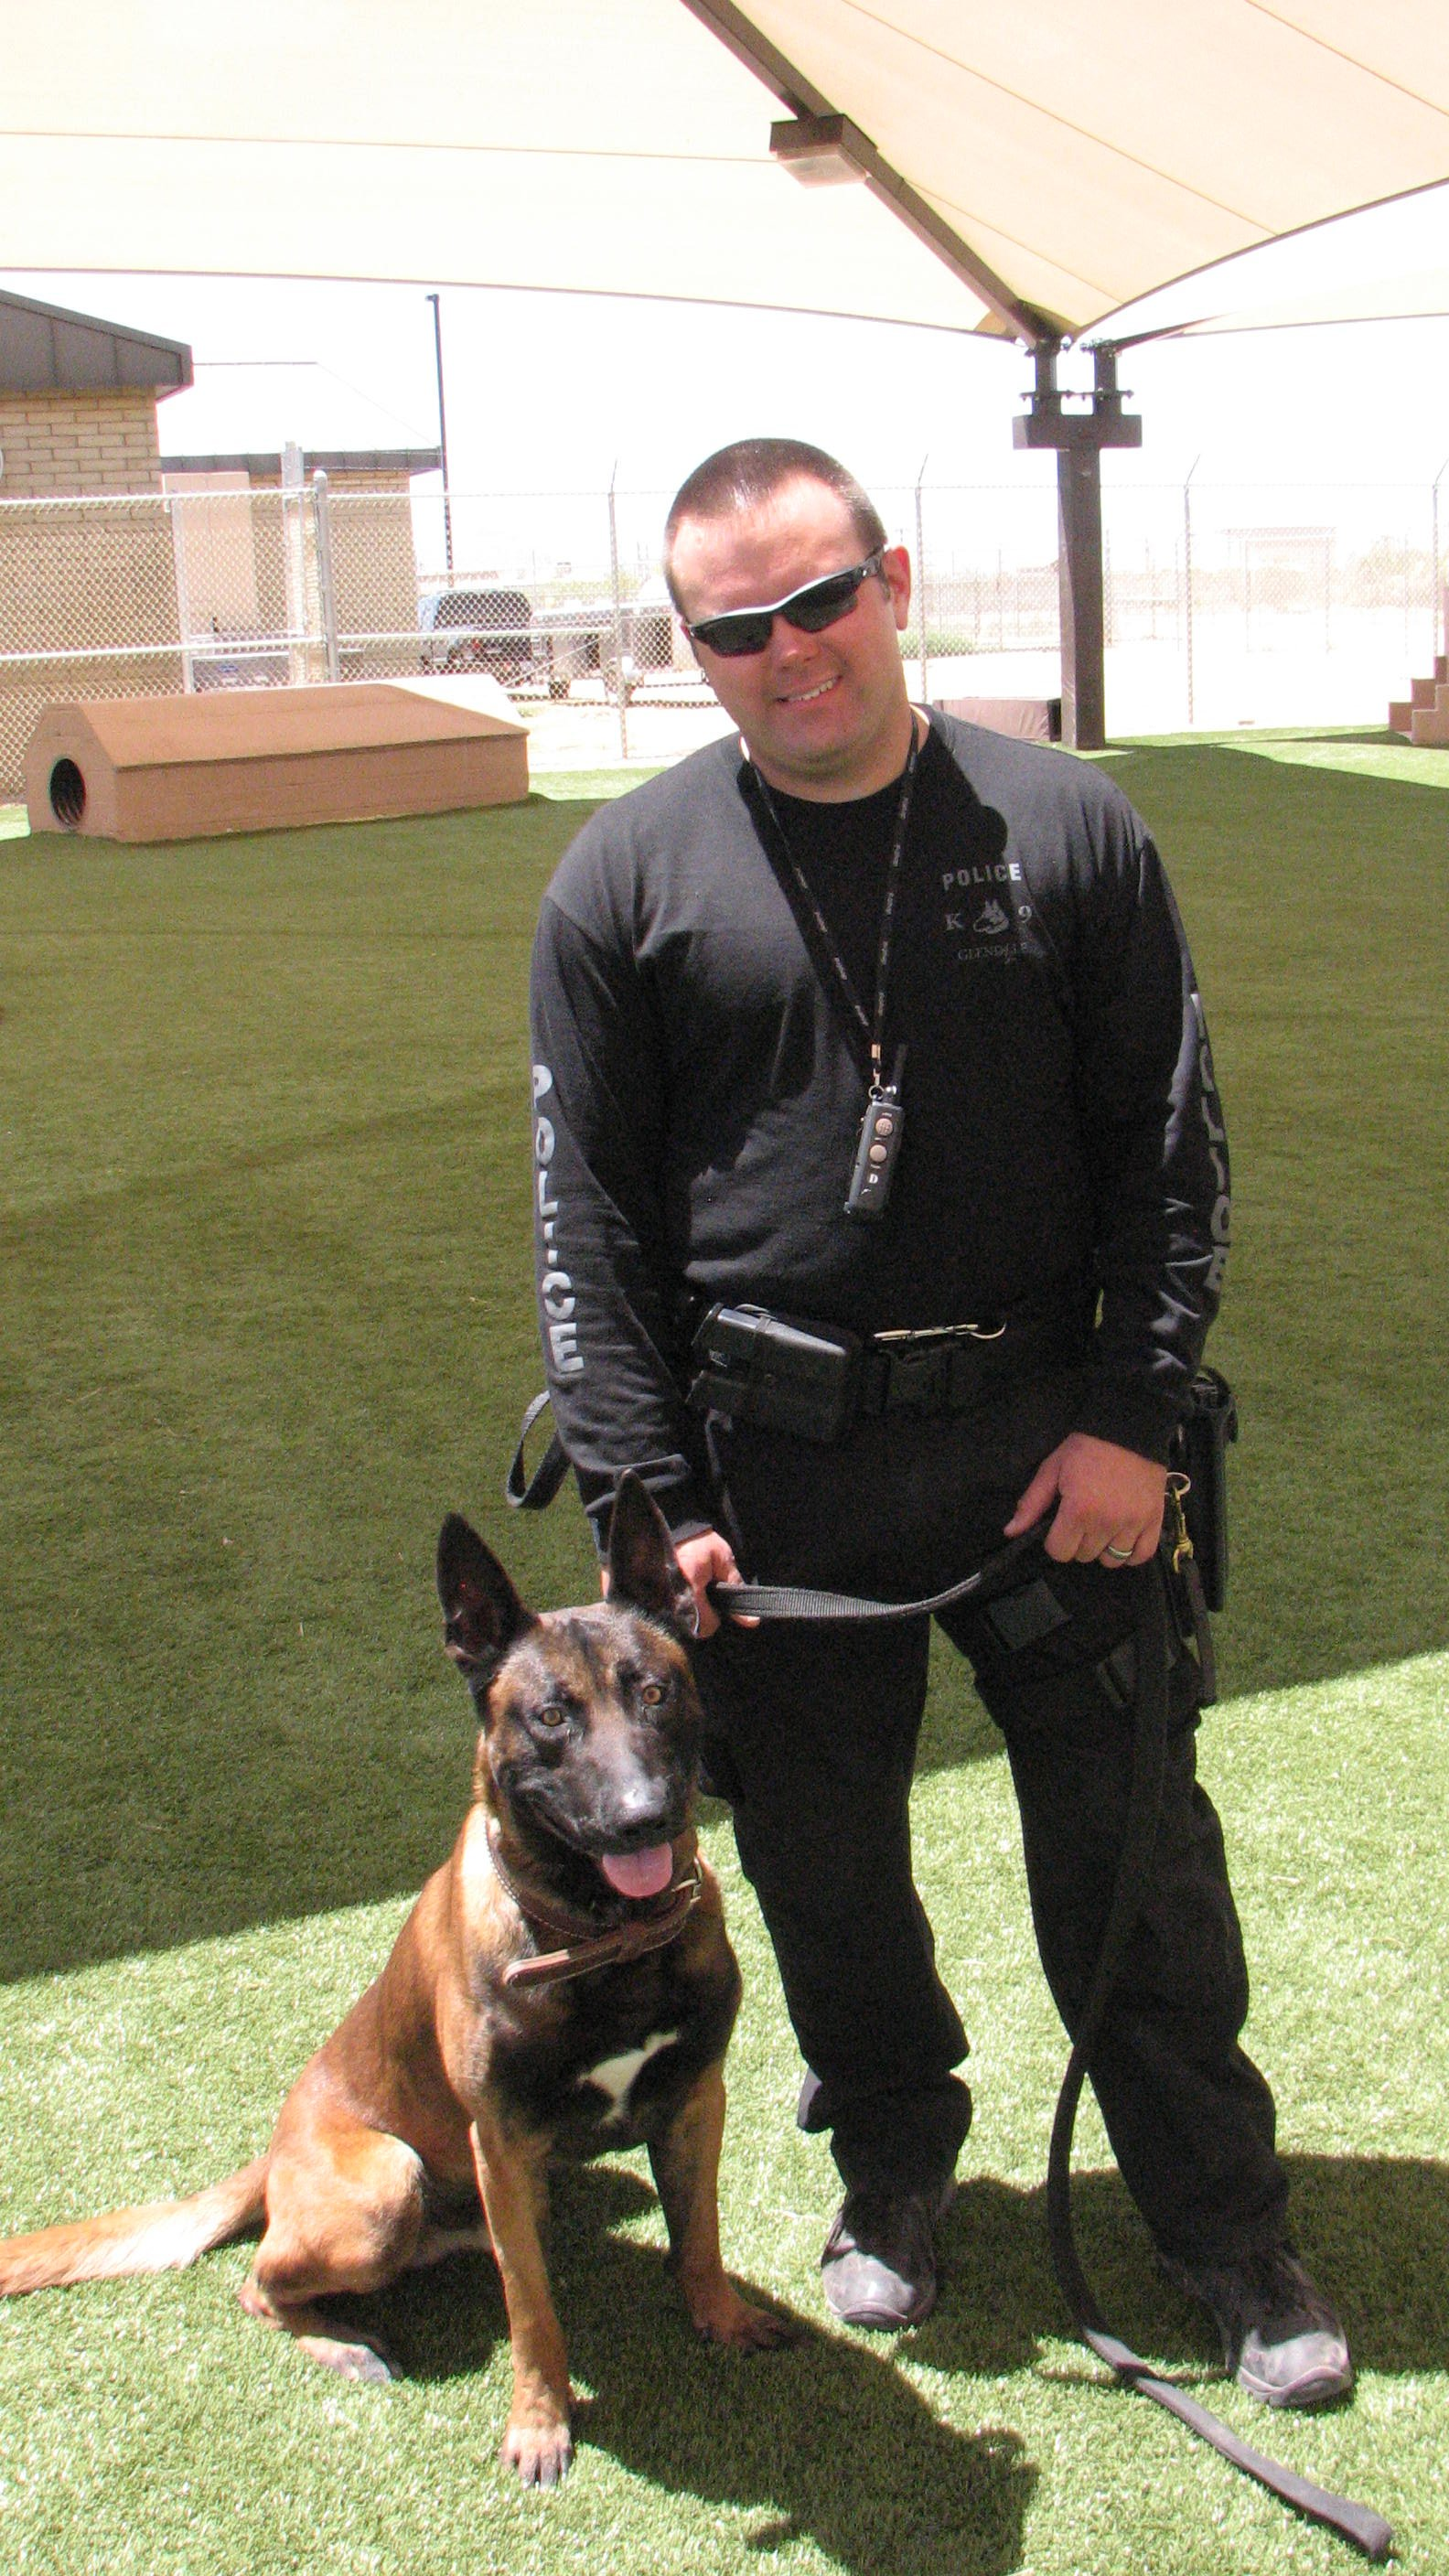 K9 Ronin and his partner.